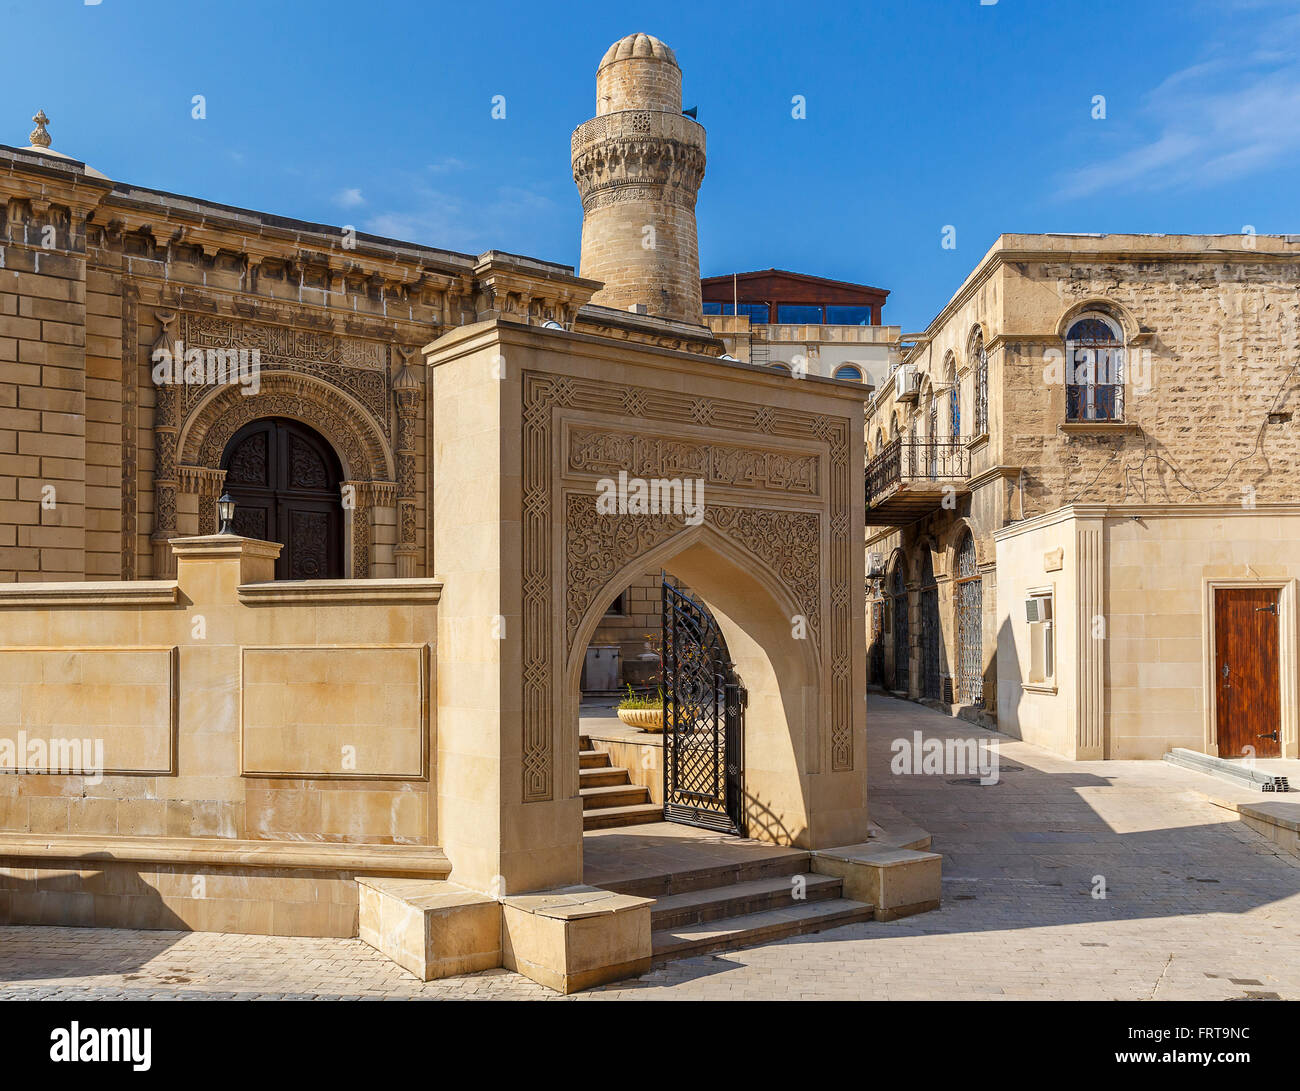 Old mosque in the fort in Baku.Azerbaijan - Stock Image